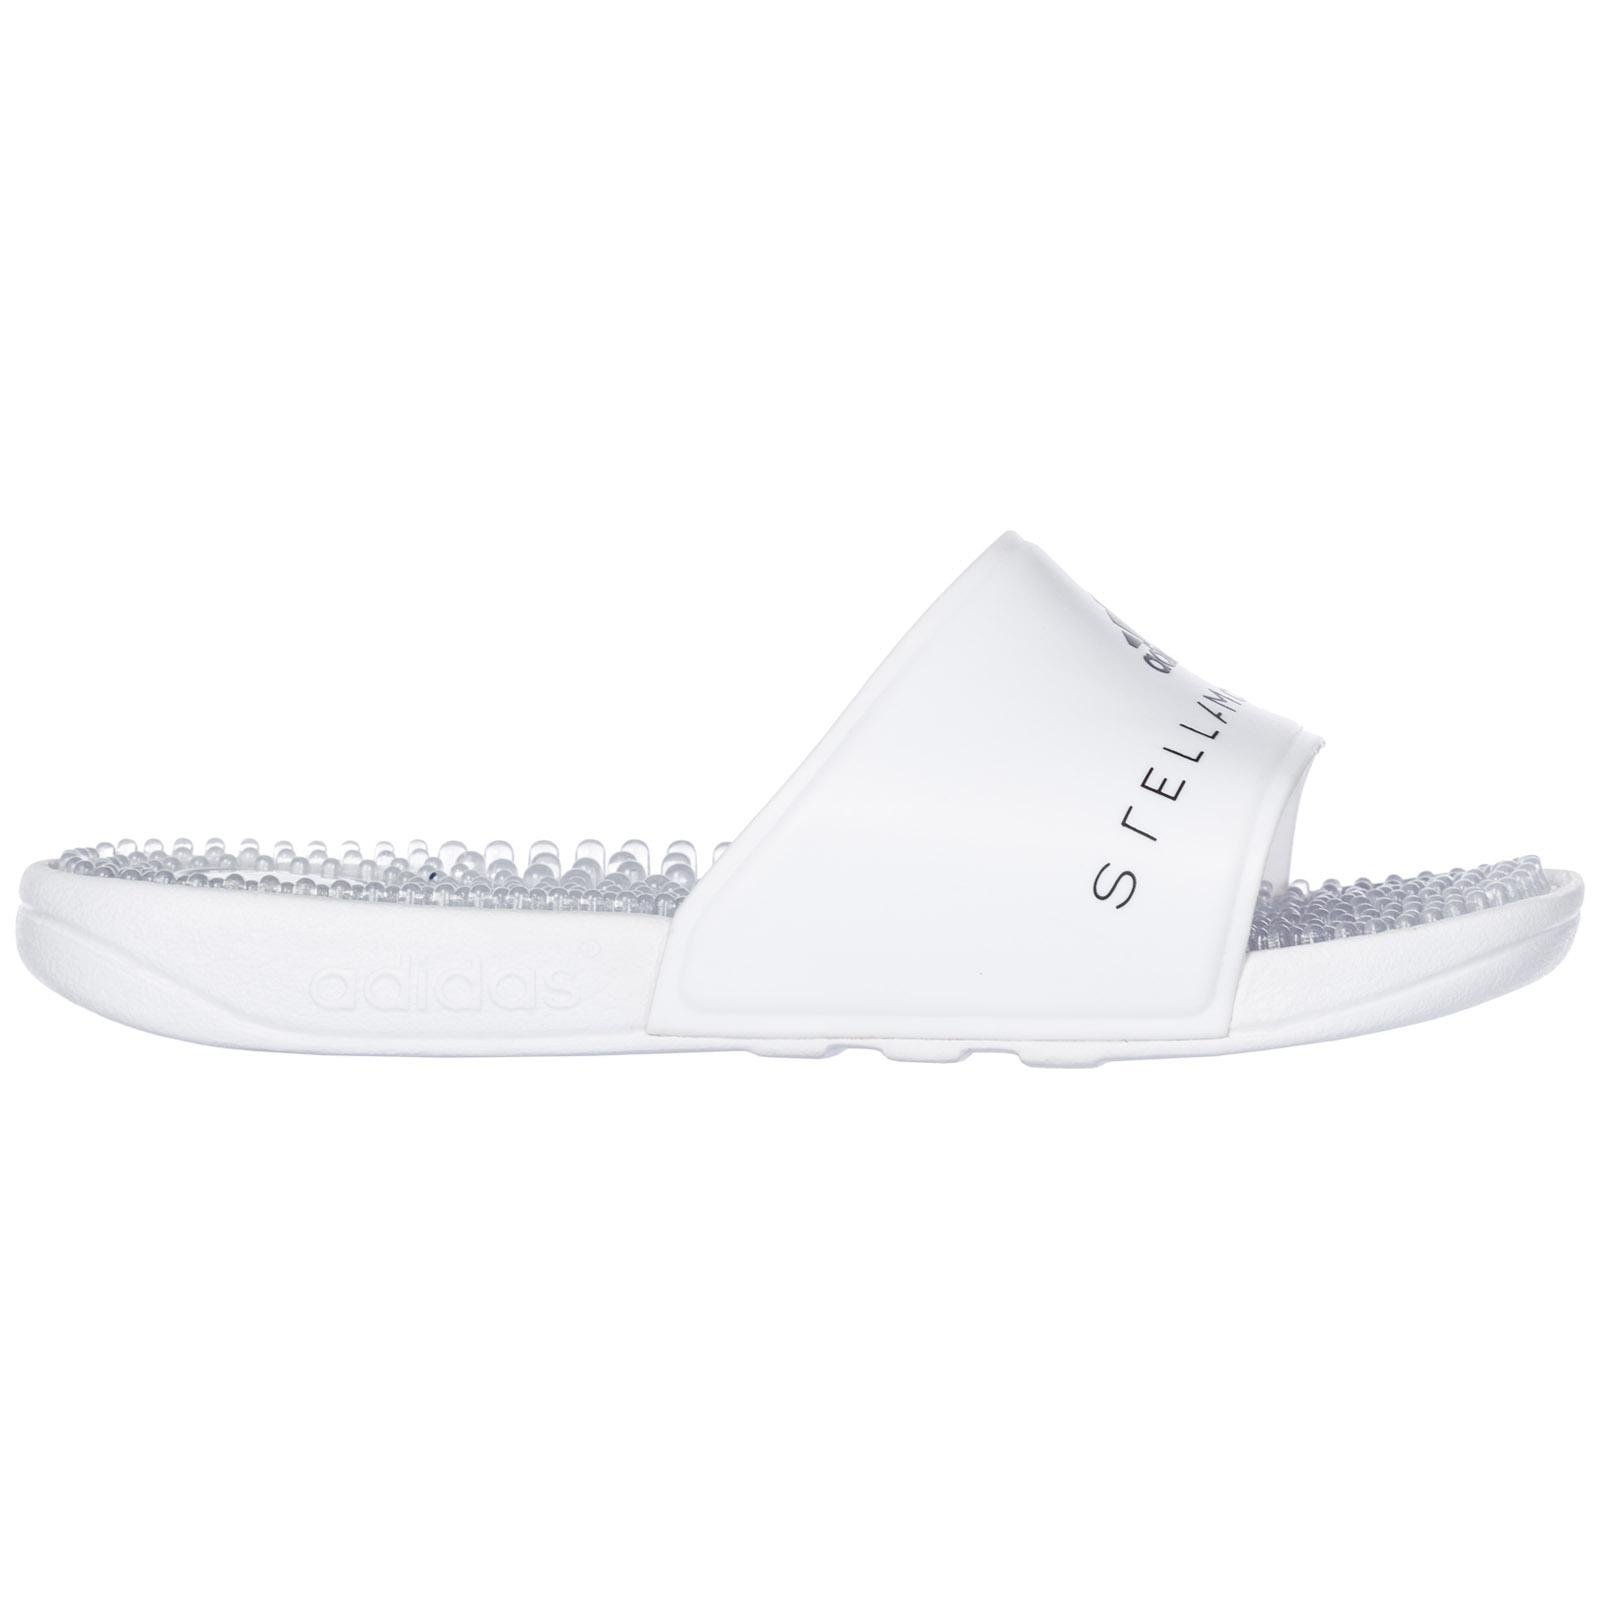 ea833ddd16c1 adidas By Stella McCartney. Women s White Rubber Slippers Sandals Adissage W